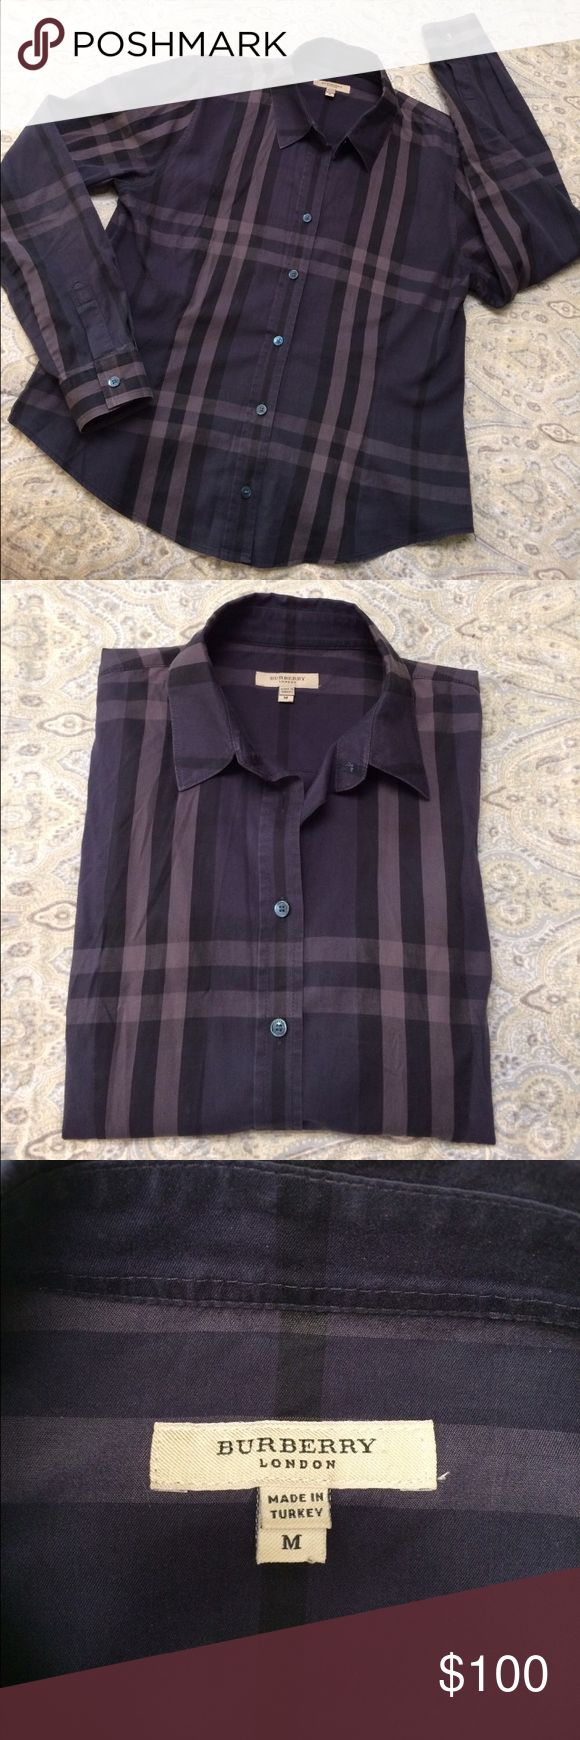 Authentic Burberry long sleeve button down Women's navy blue-ish purple Burberry long sleeve button up. Subtle signature plaid print. Reposh, only because I recently purchased another shirt like it and I don't need both. This shirt is fitted, unlike some button ups. Burberry Tops